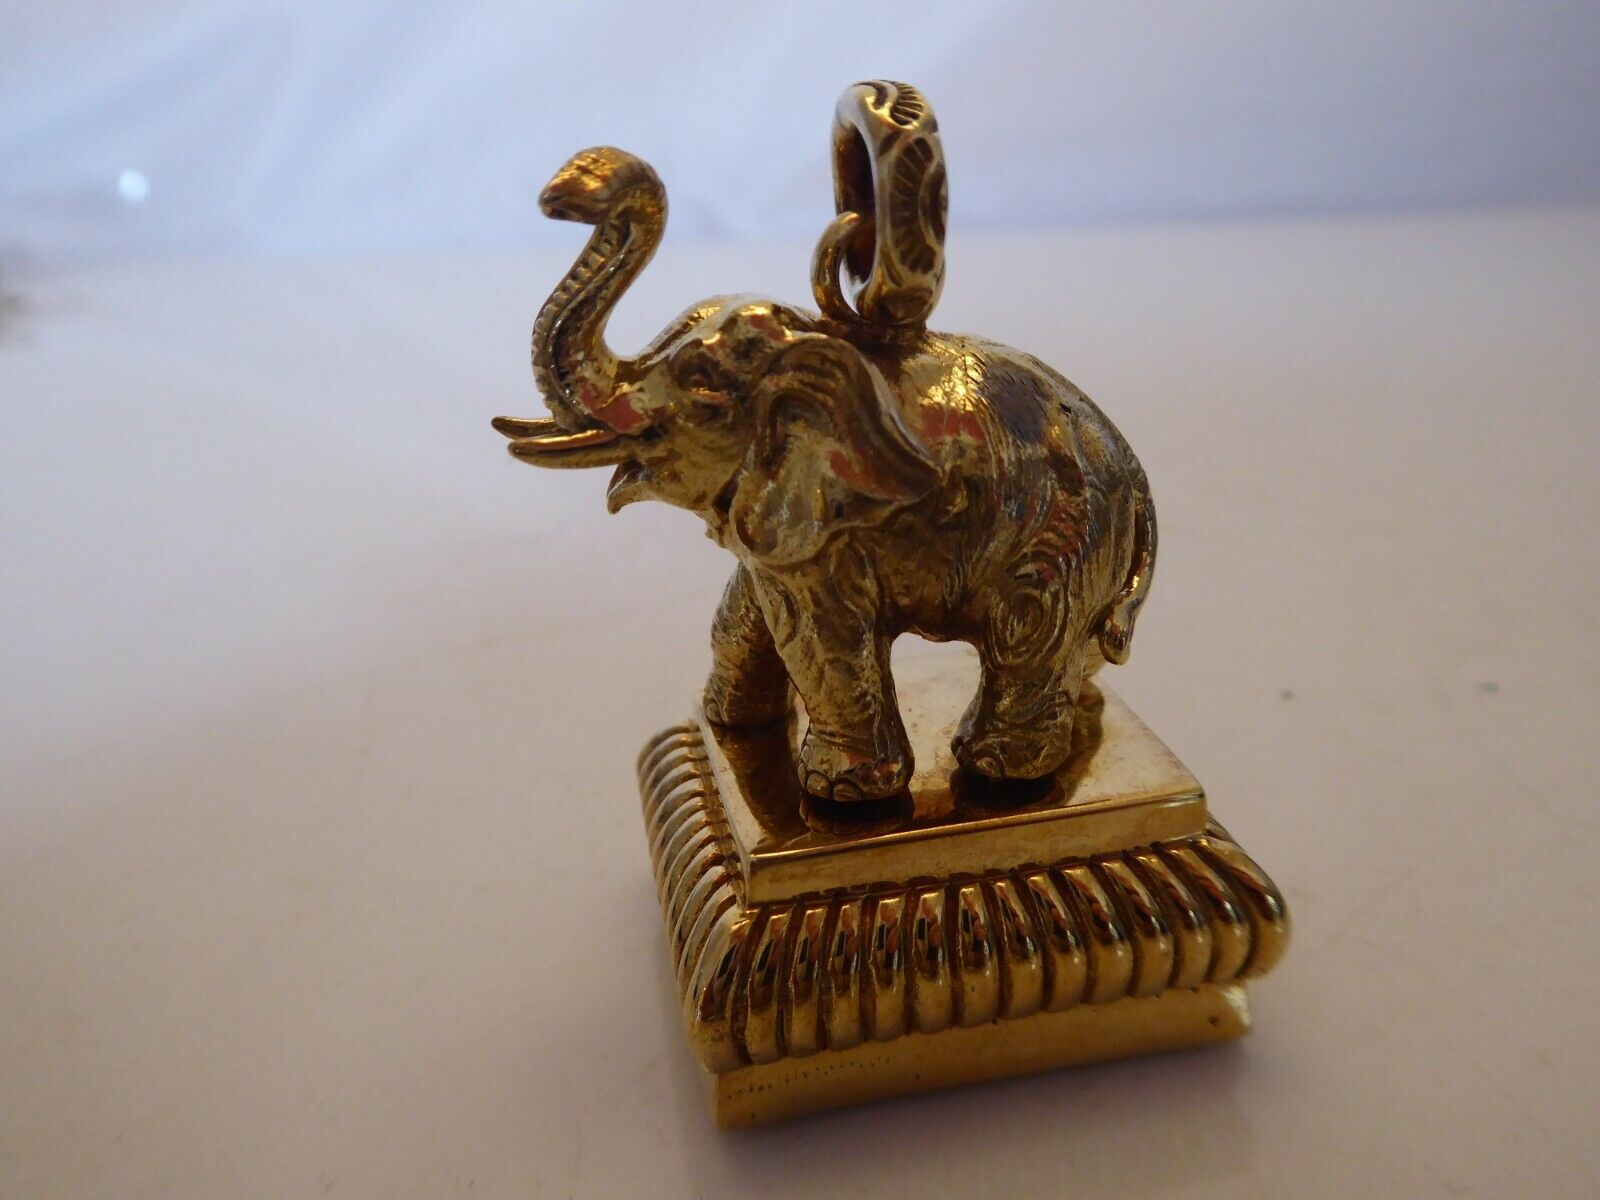 GILDED SEAL IN FORM OF A STANDING ELEPHANT.